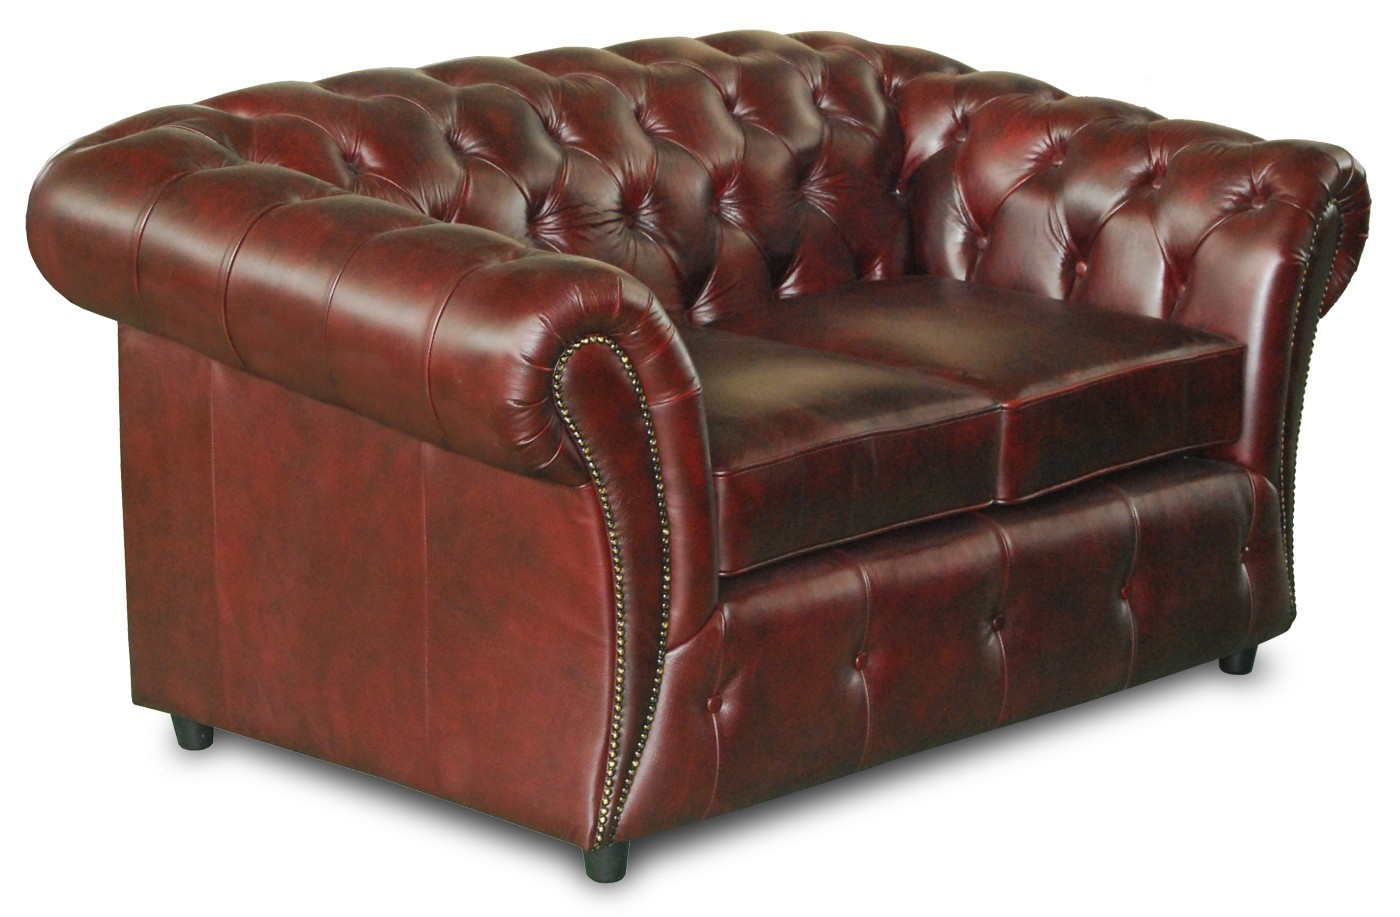 Oxford Classic Chesterfield 3 seater